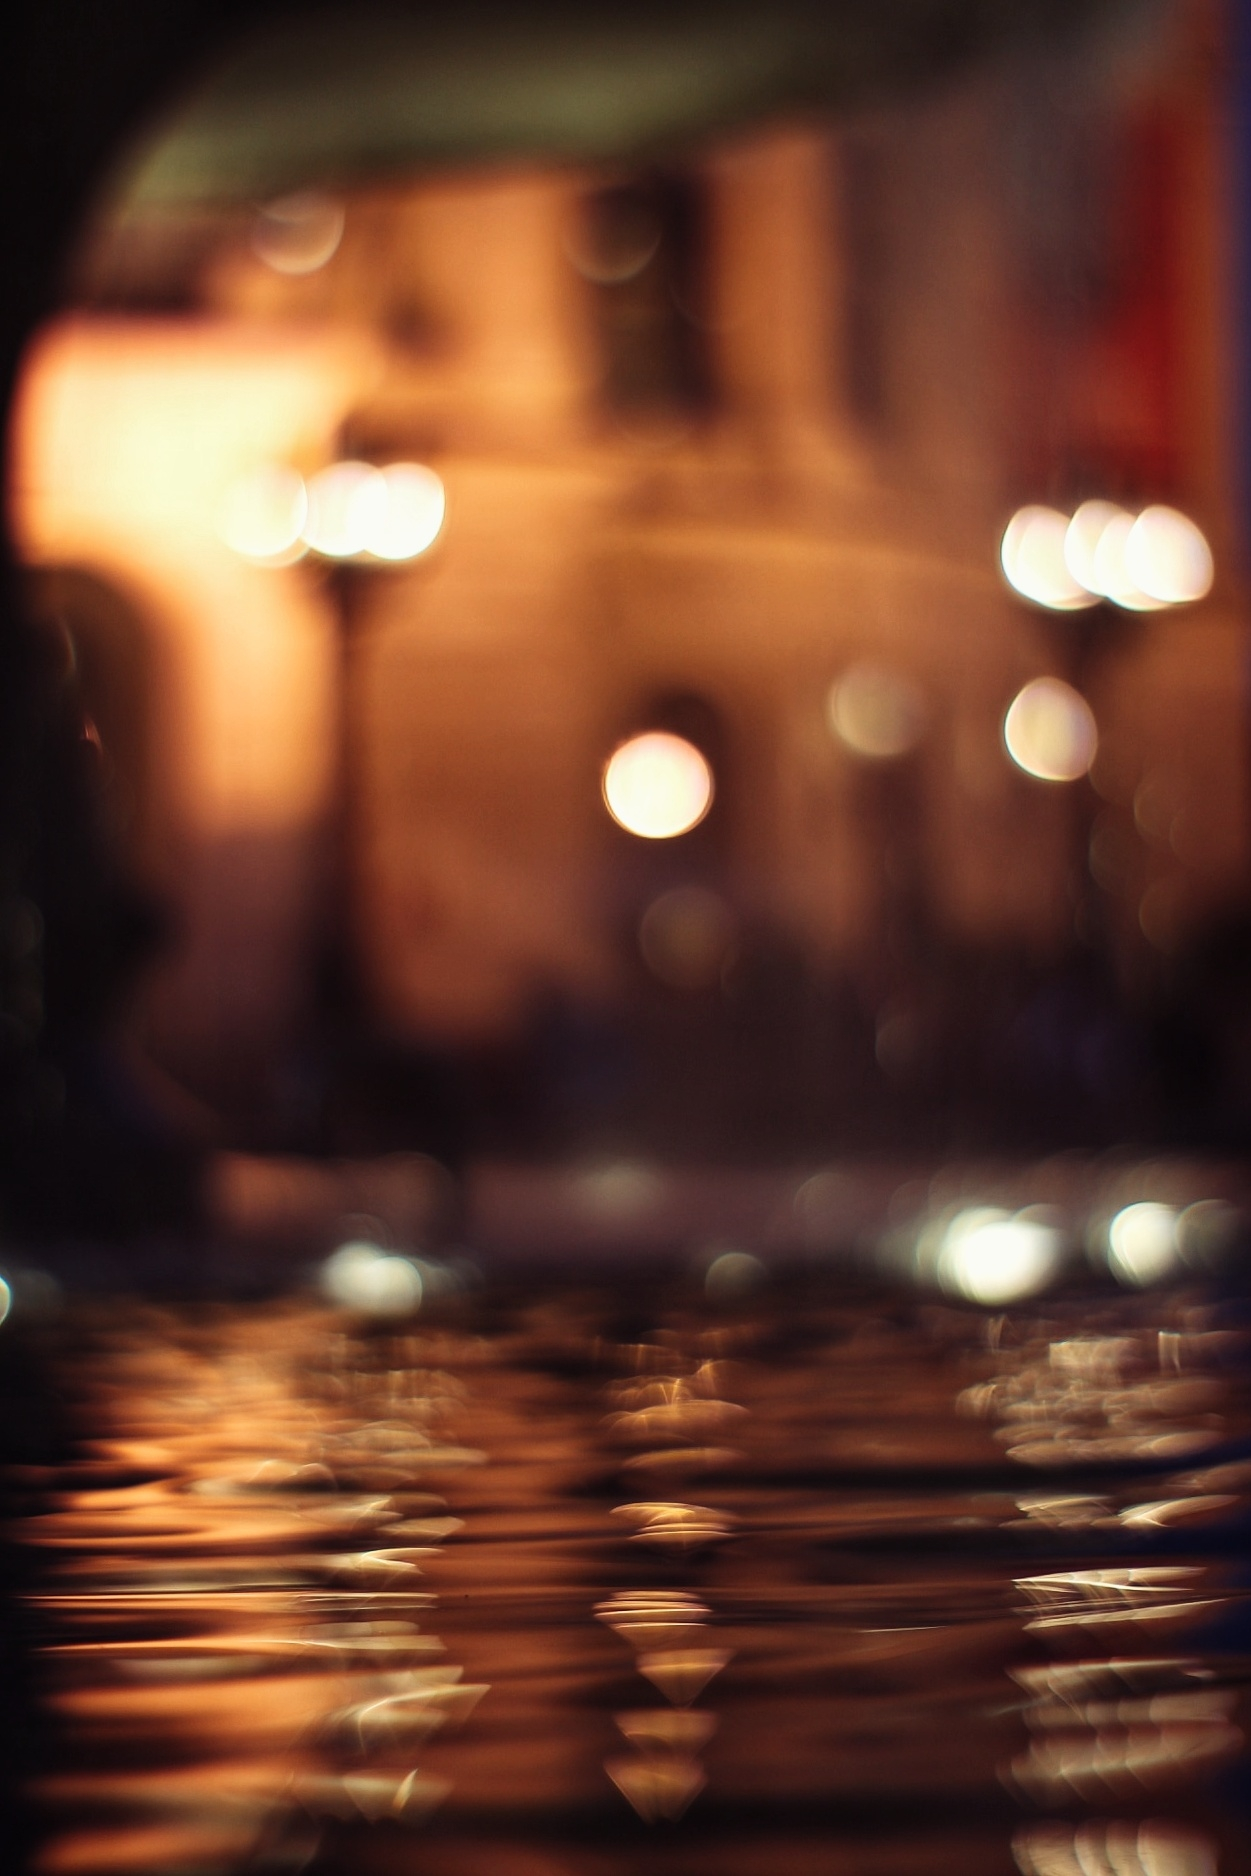 Bokeh on the water